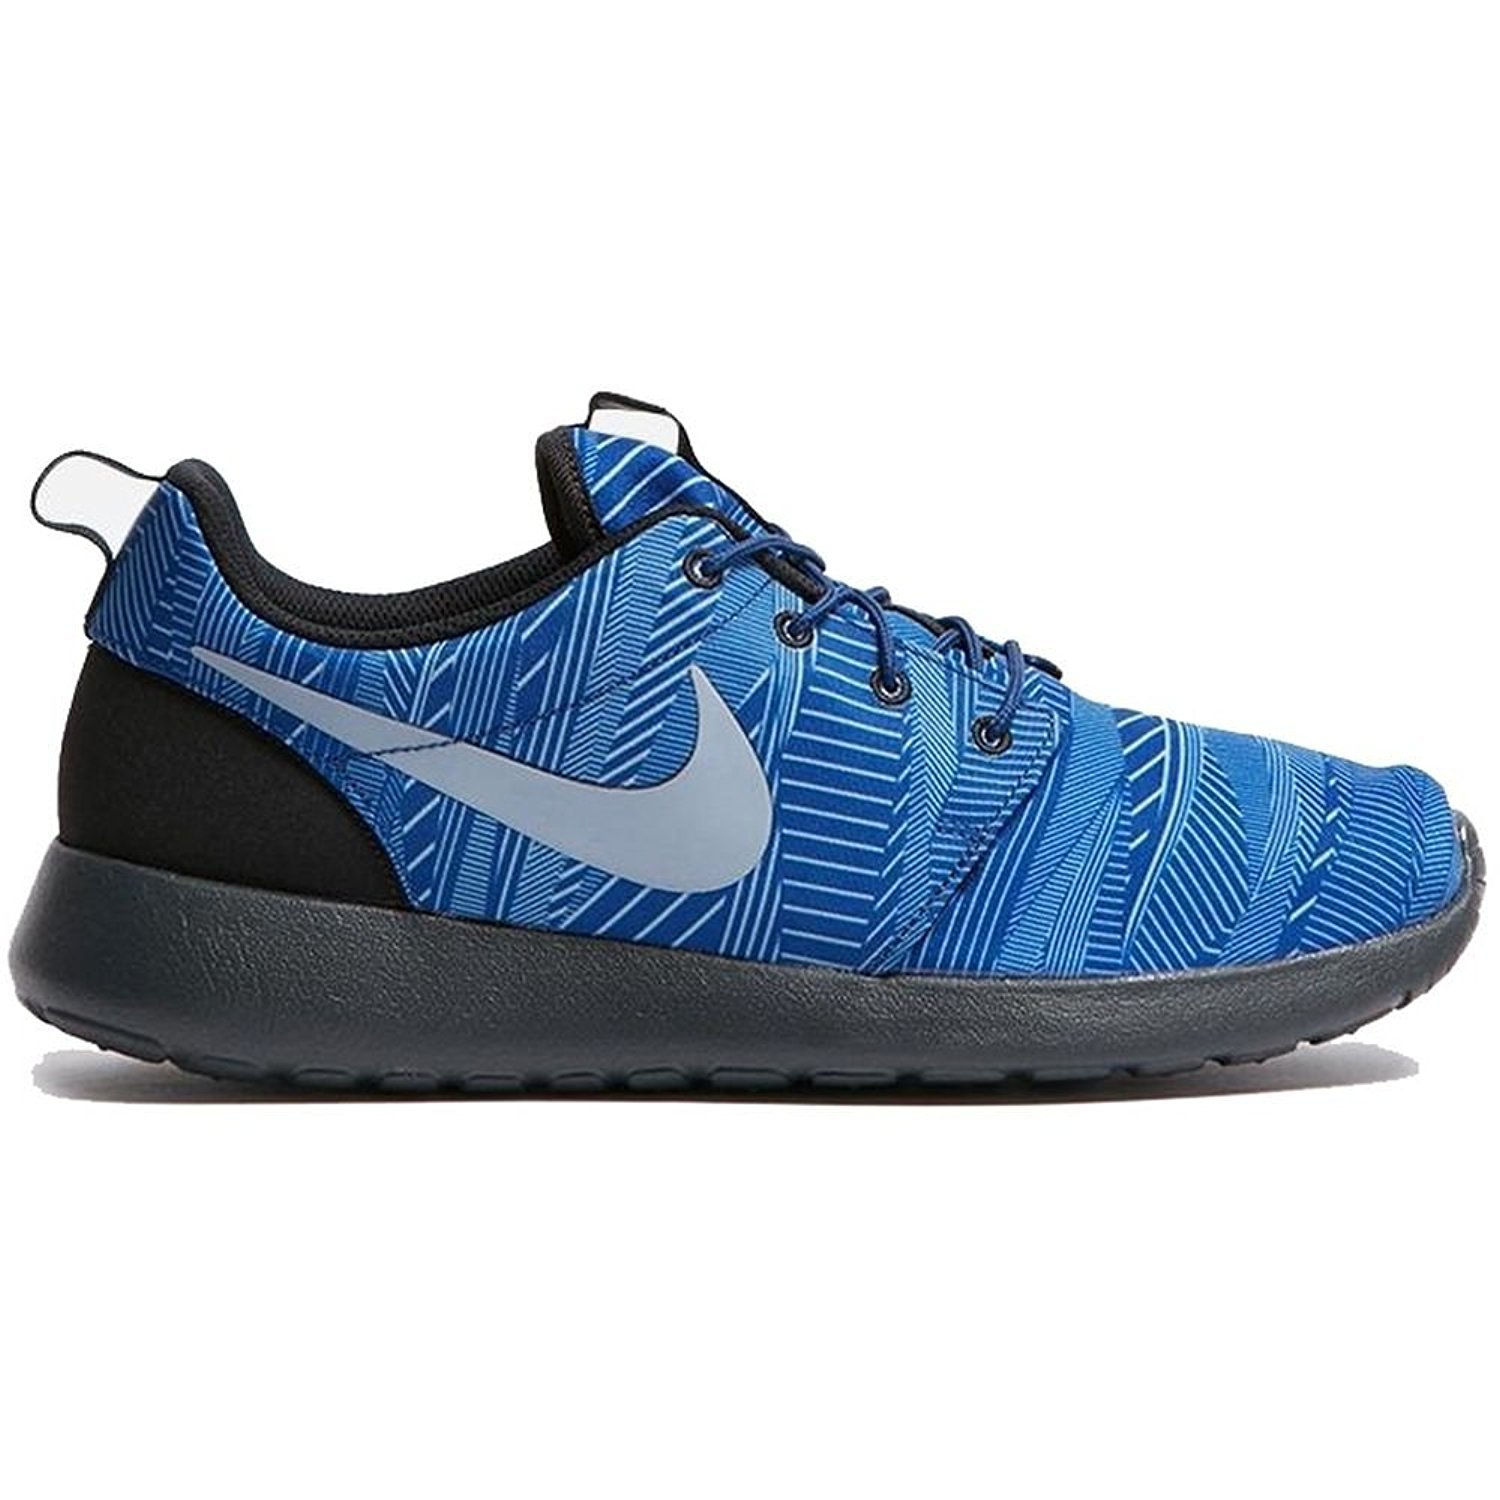 NIKE 655206 Men's Roshe One Print, Stylish and Comfortable Casual Sneakers B071NJV25P 9.5 D(M) US|Coastal Blue/Blue Grey-wolf Grey-black